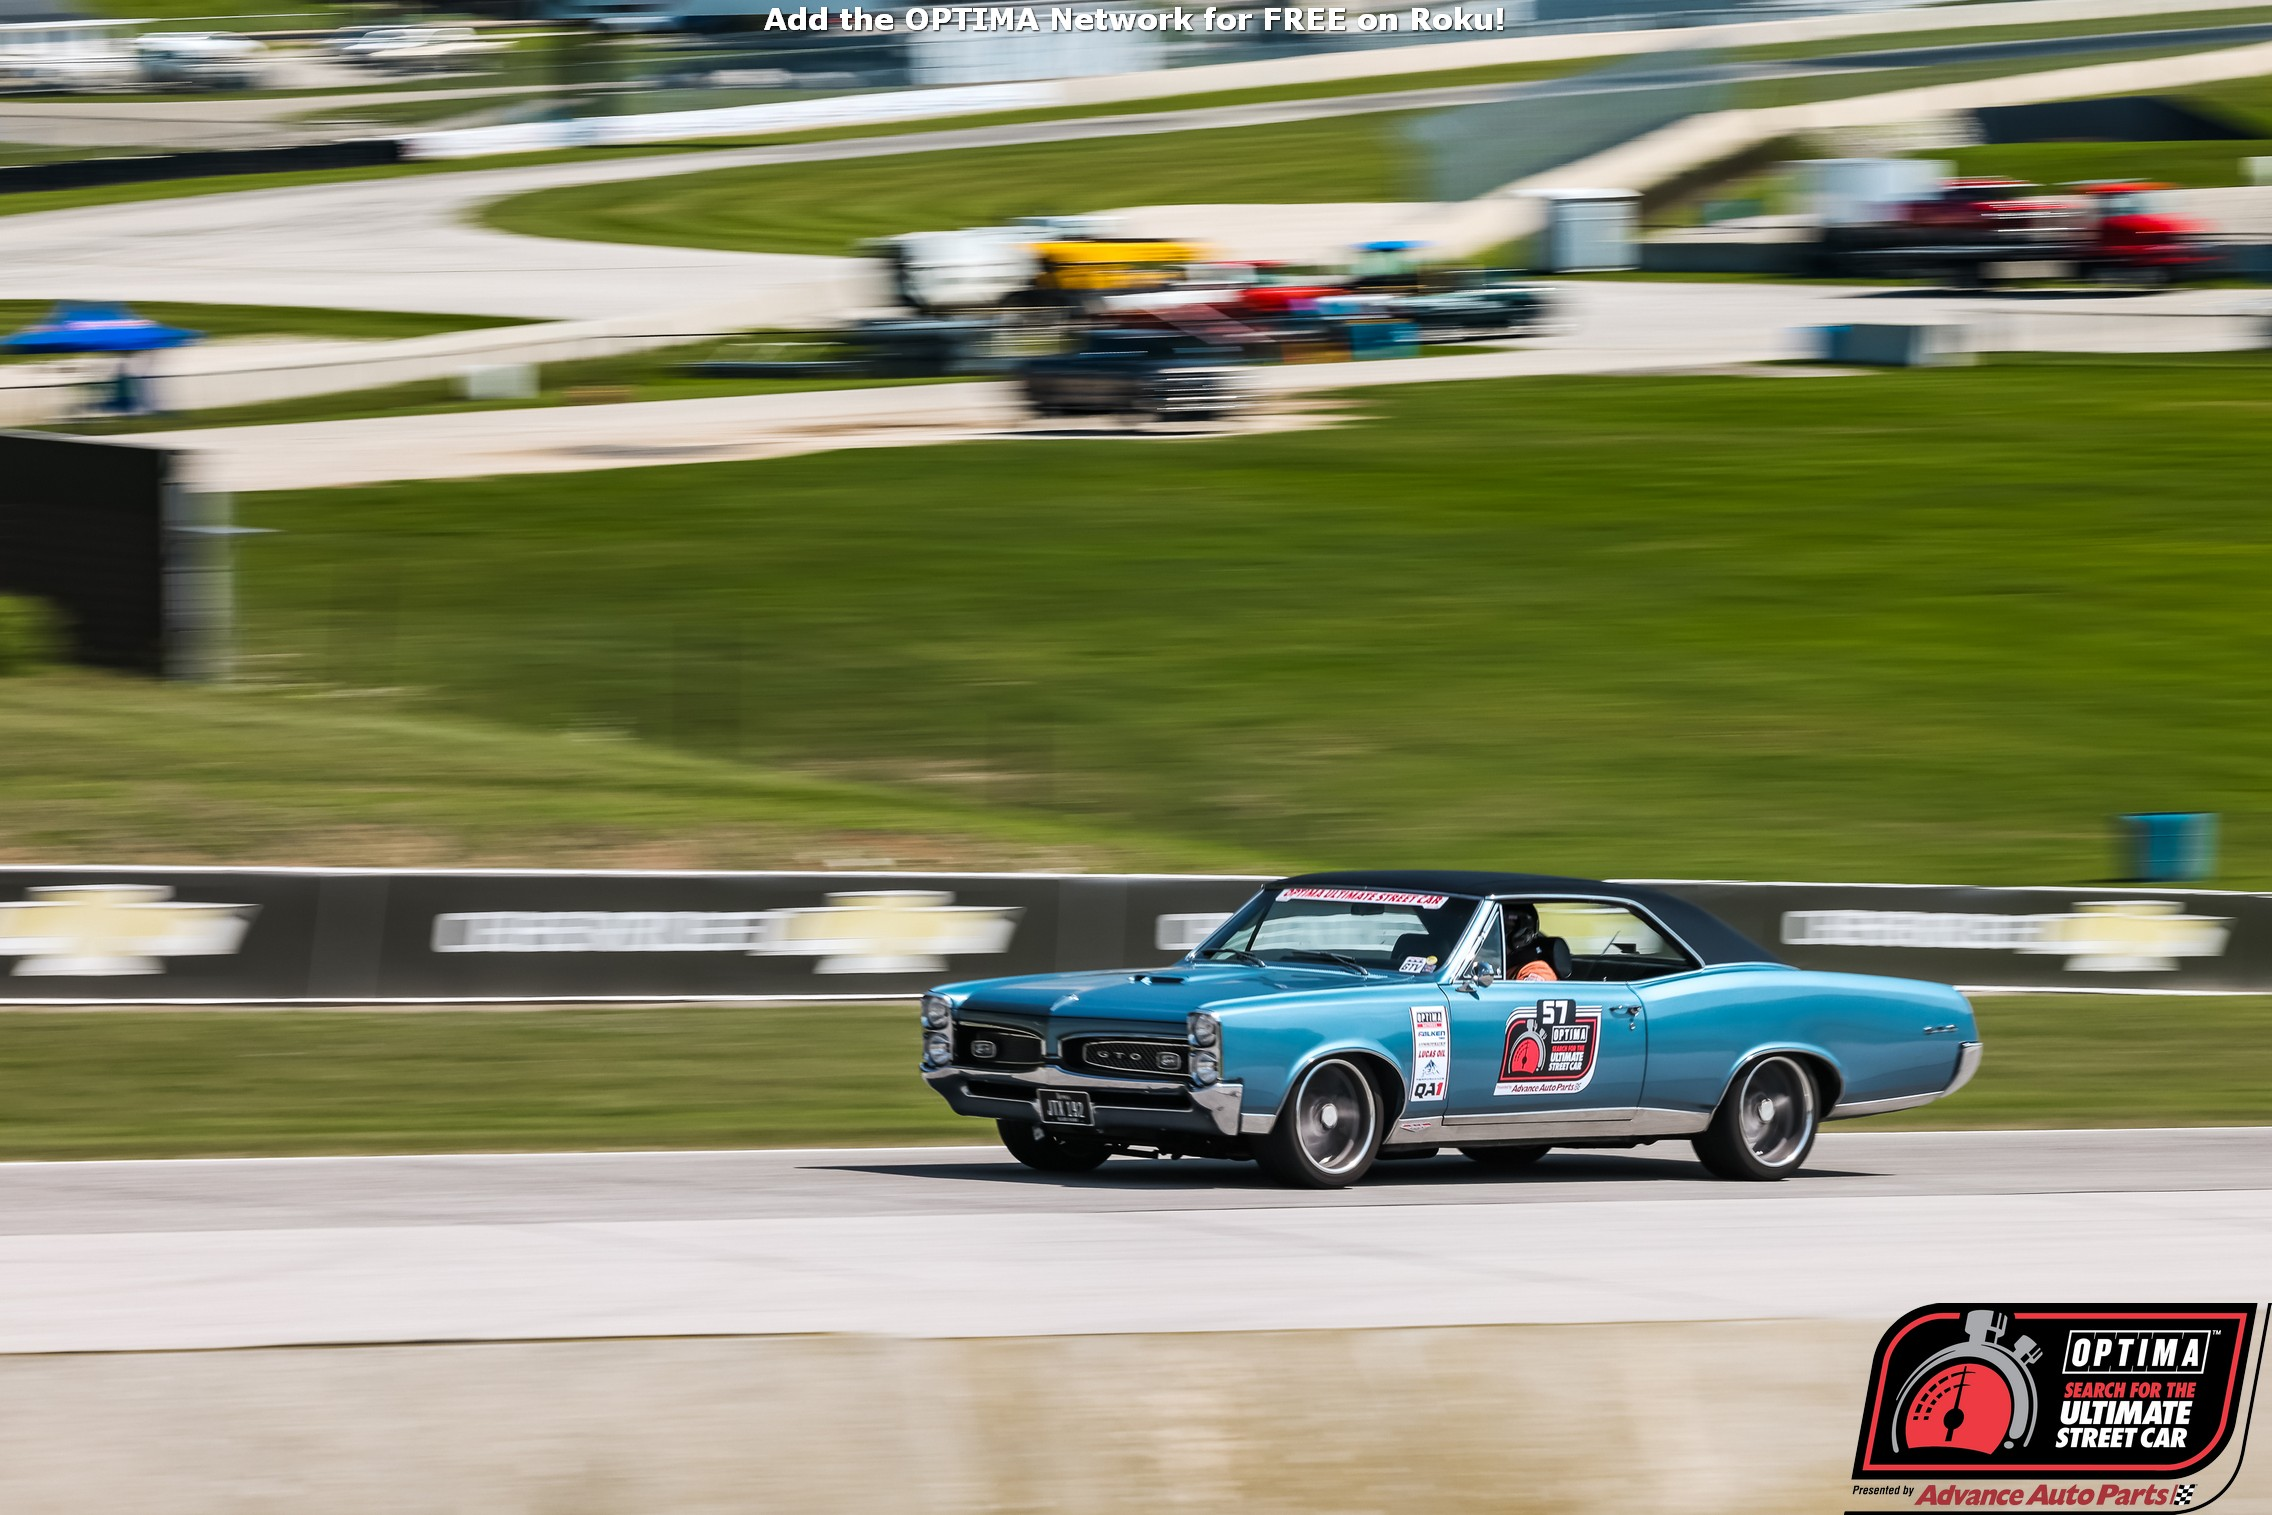 More Pro Touring Action Photos From DriveOptima At Road America In Wisconsin